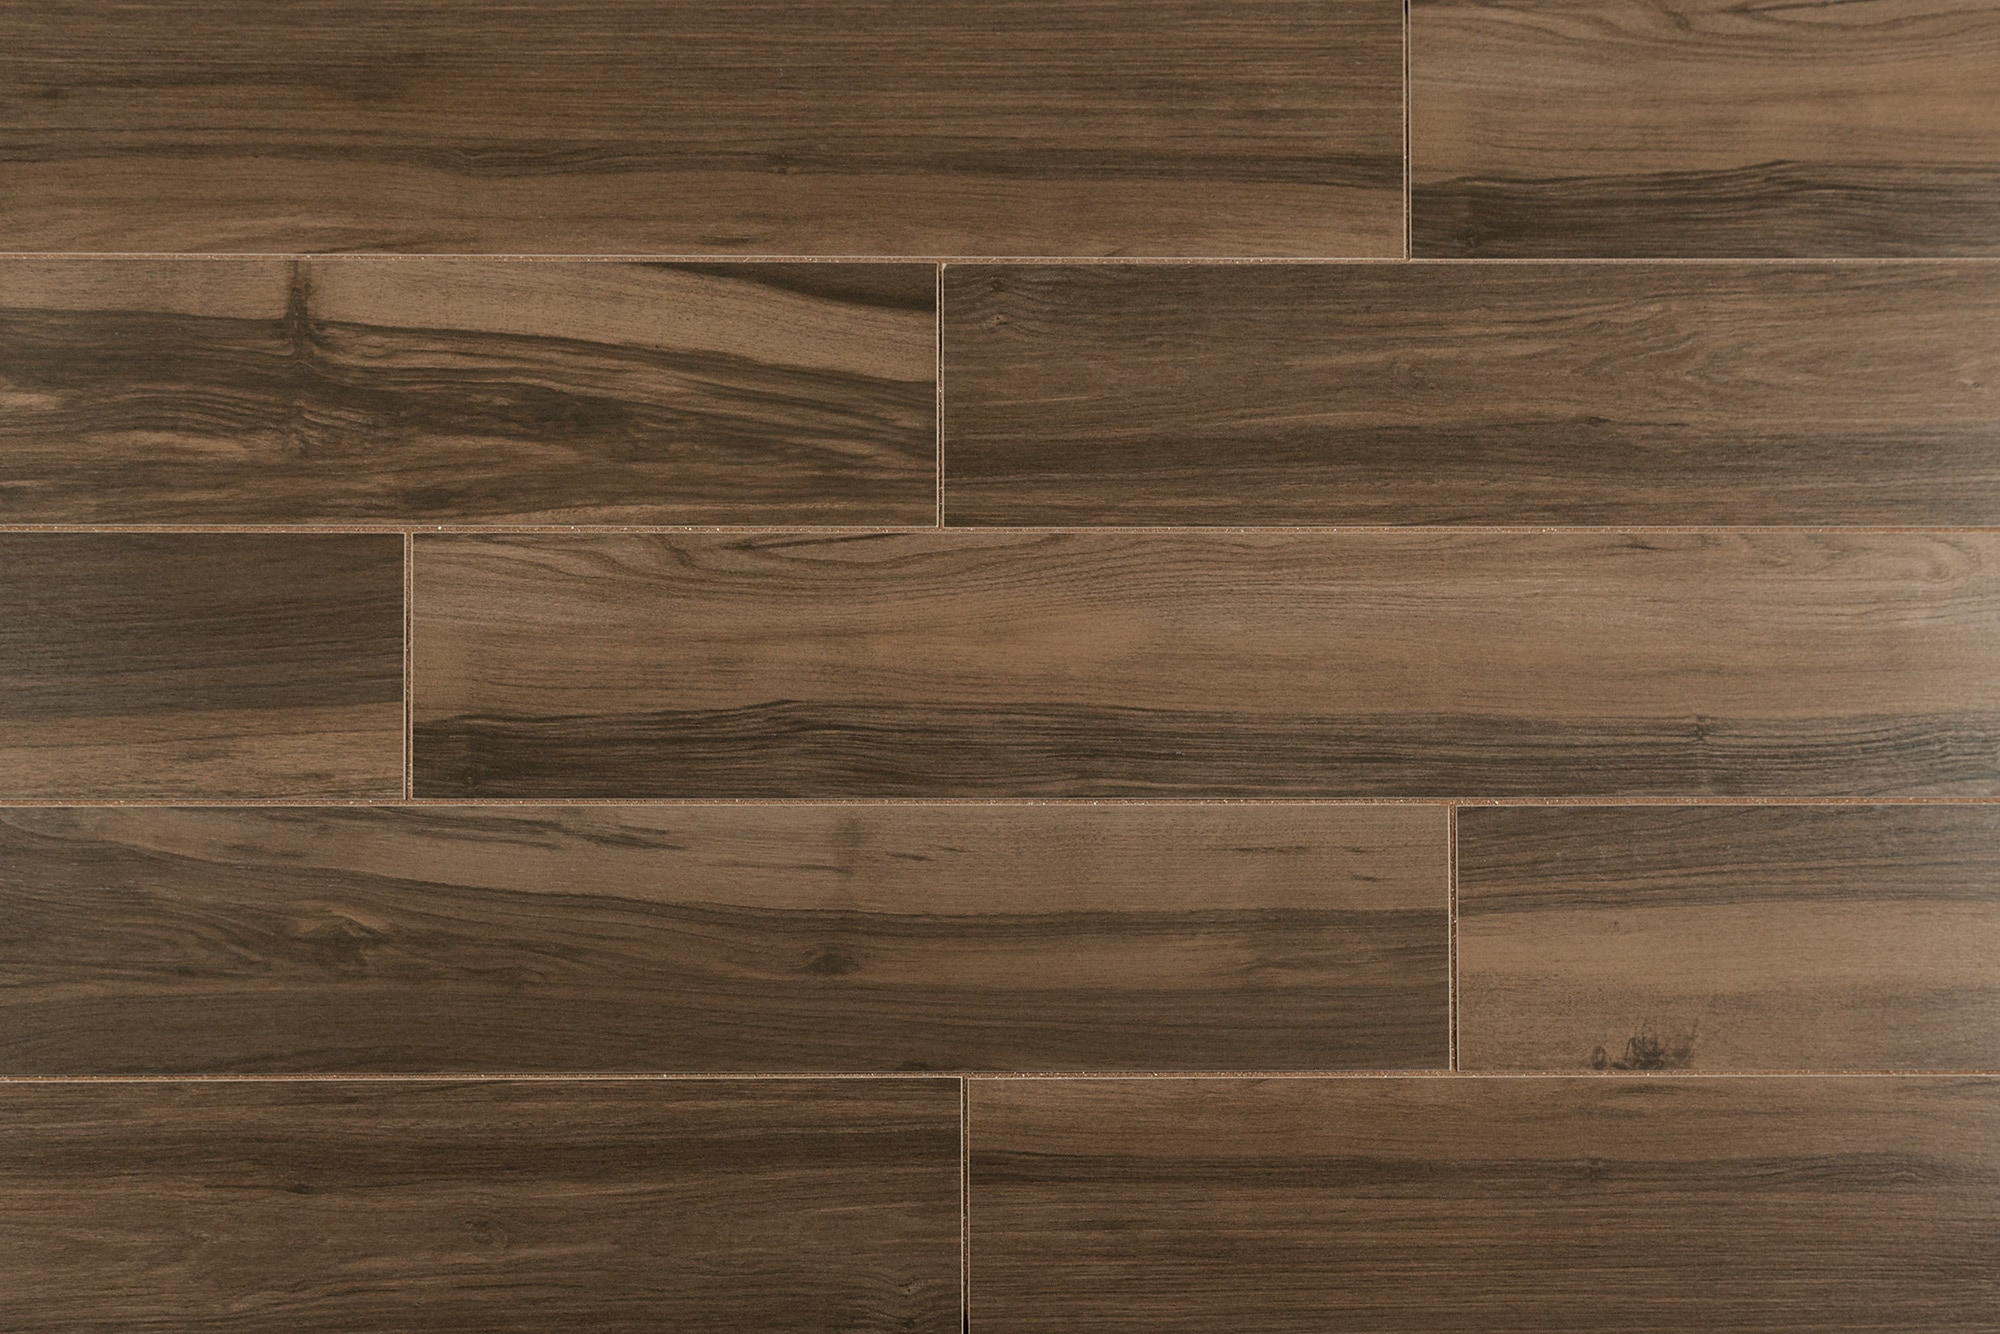 Salerno Porcelain Tile Urban Wood Series Dark Brown X - Dark brown tile that looks like wood